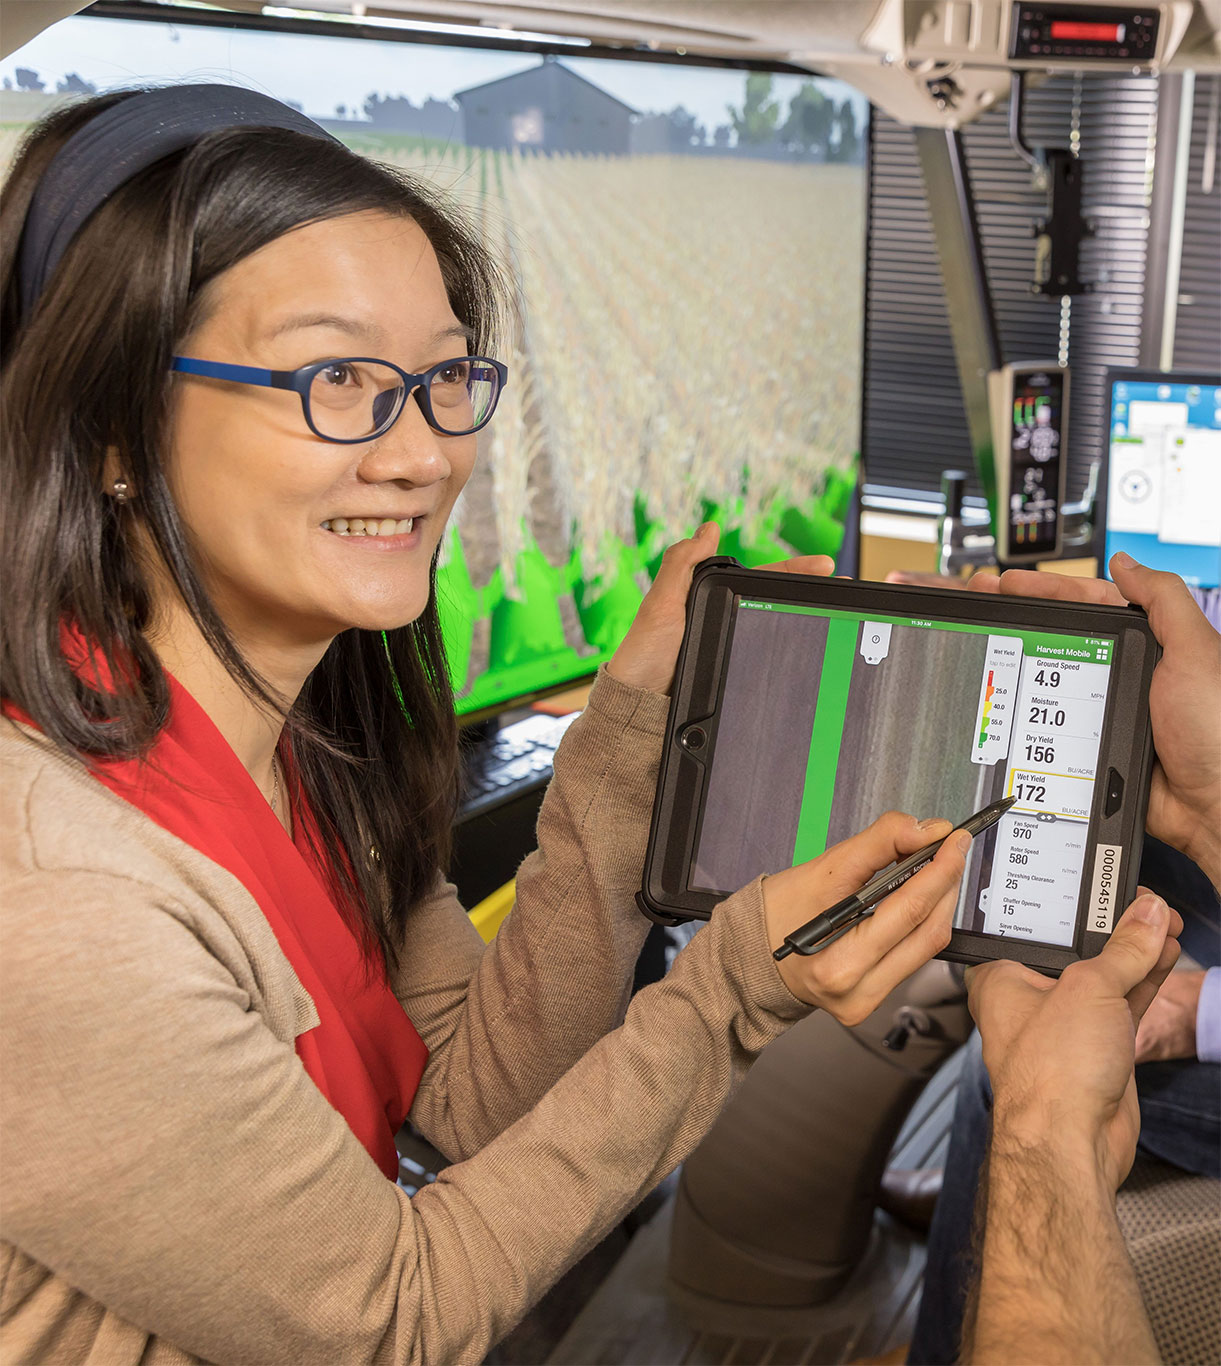 Woman points with stylus, showing information to a man. Tractor simulator in the background.